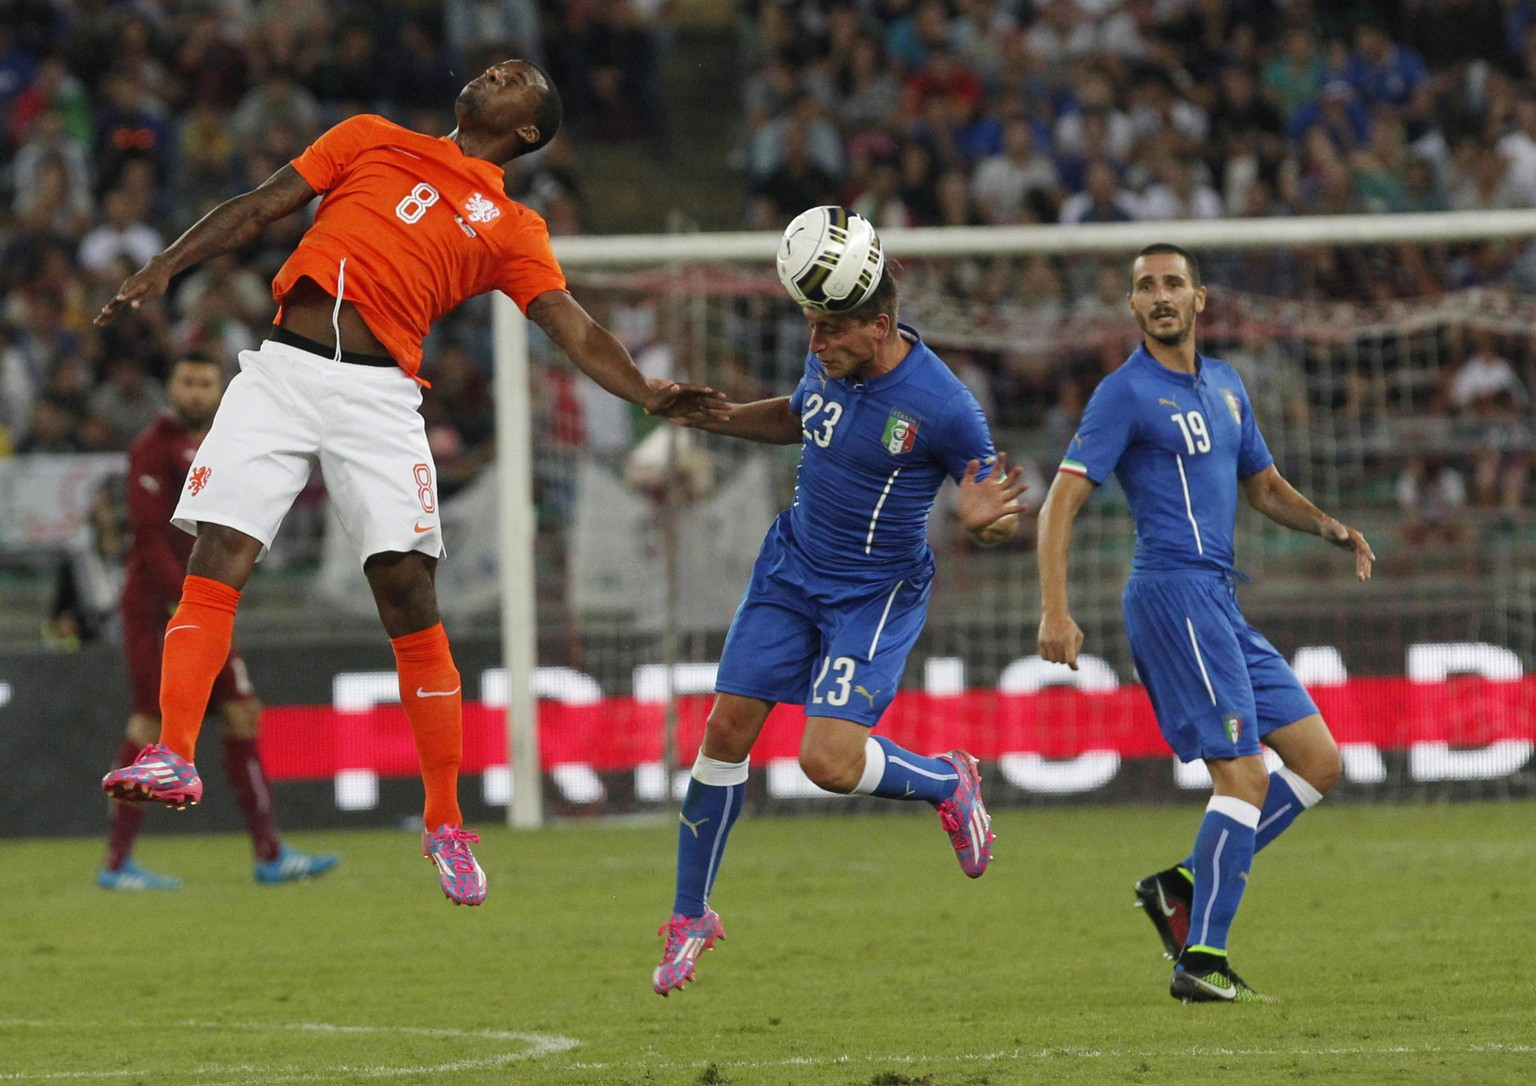 epa04384861 Italy's Emanuele Giaccherini (C) and Dutch player Georginio Wijnaldum (L) in action during the international friendly soccer match between Italy and the Netherlands at San Nicola stadium in Bari, Italy, 04 September 2014.  EPA/CIRO DE LUCA